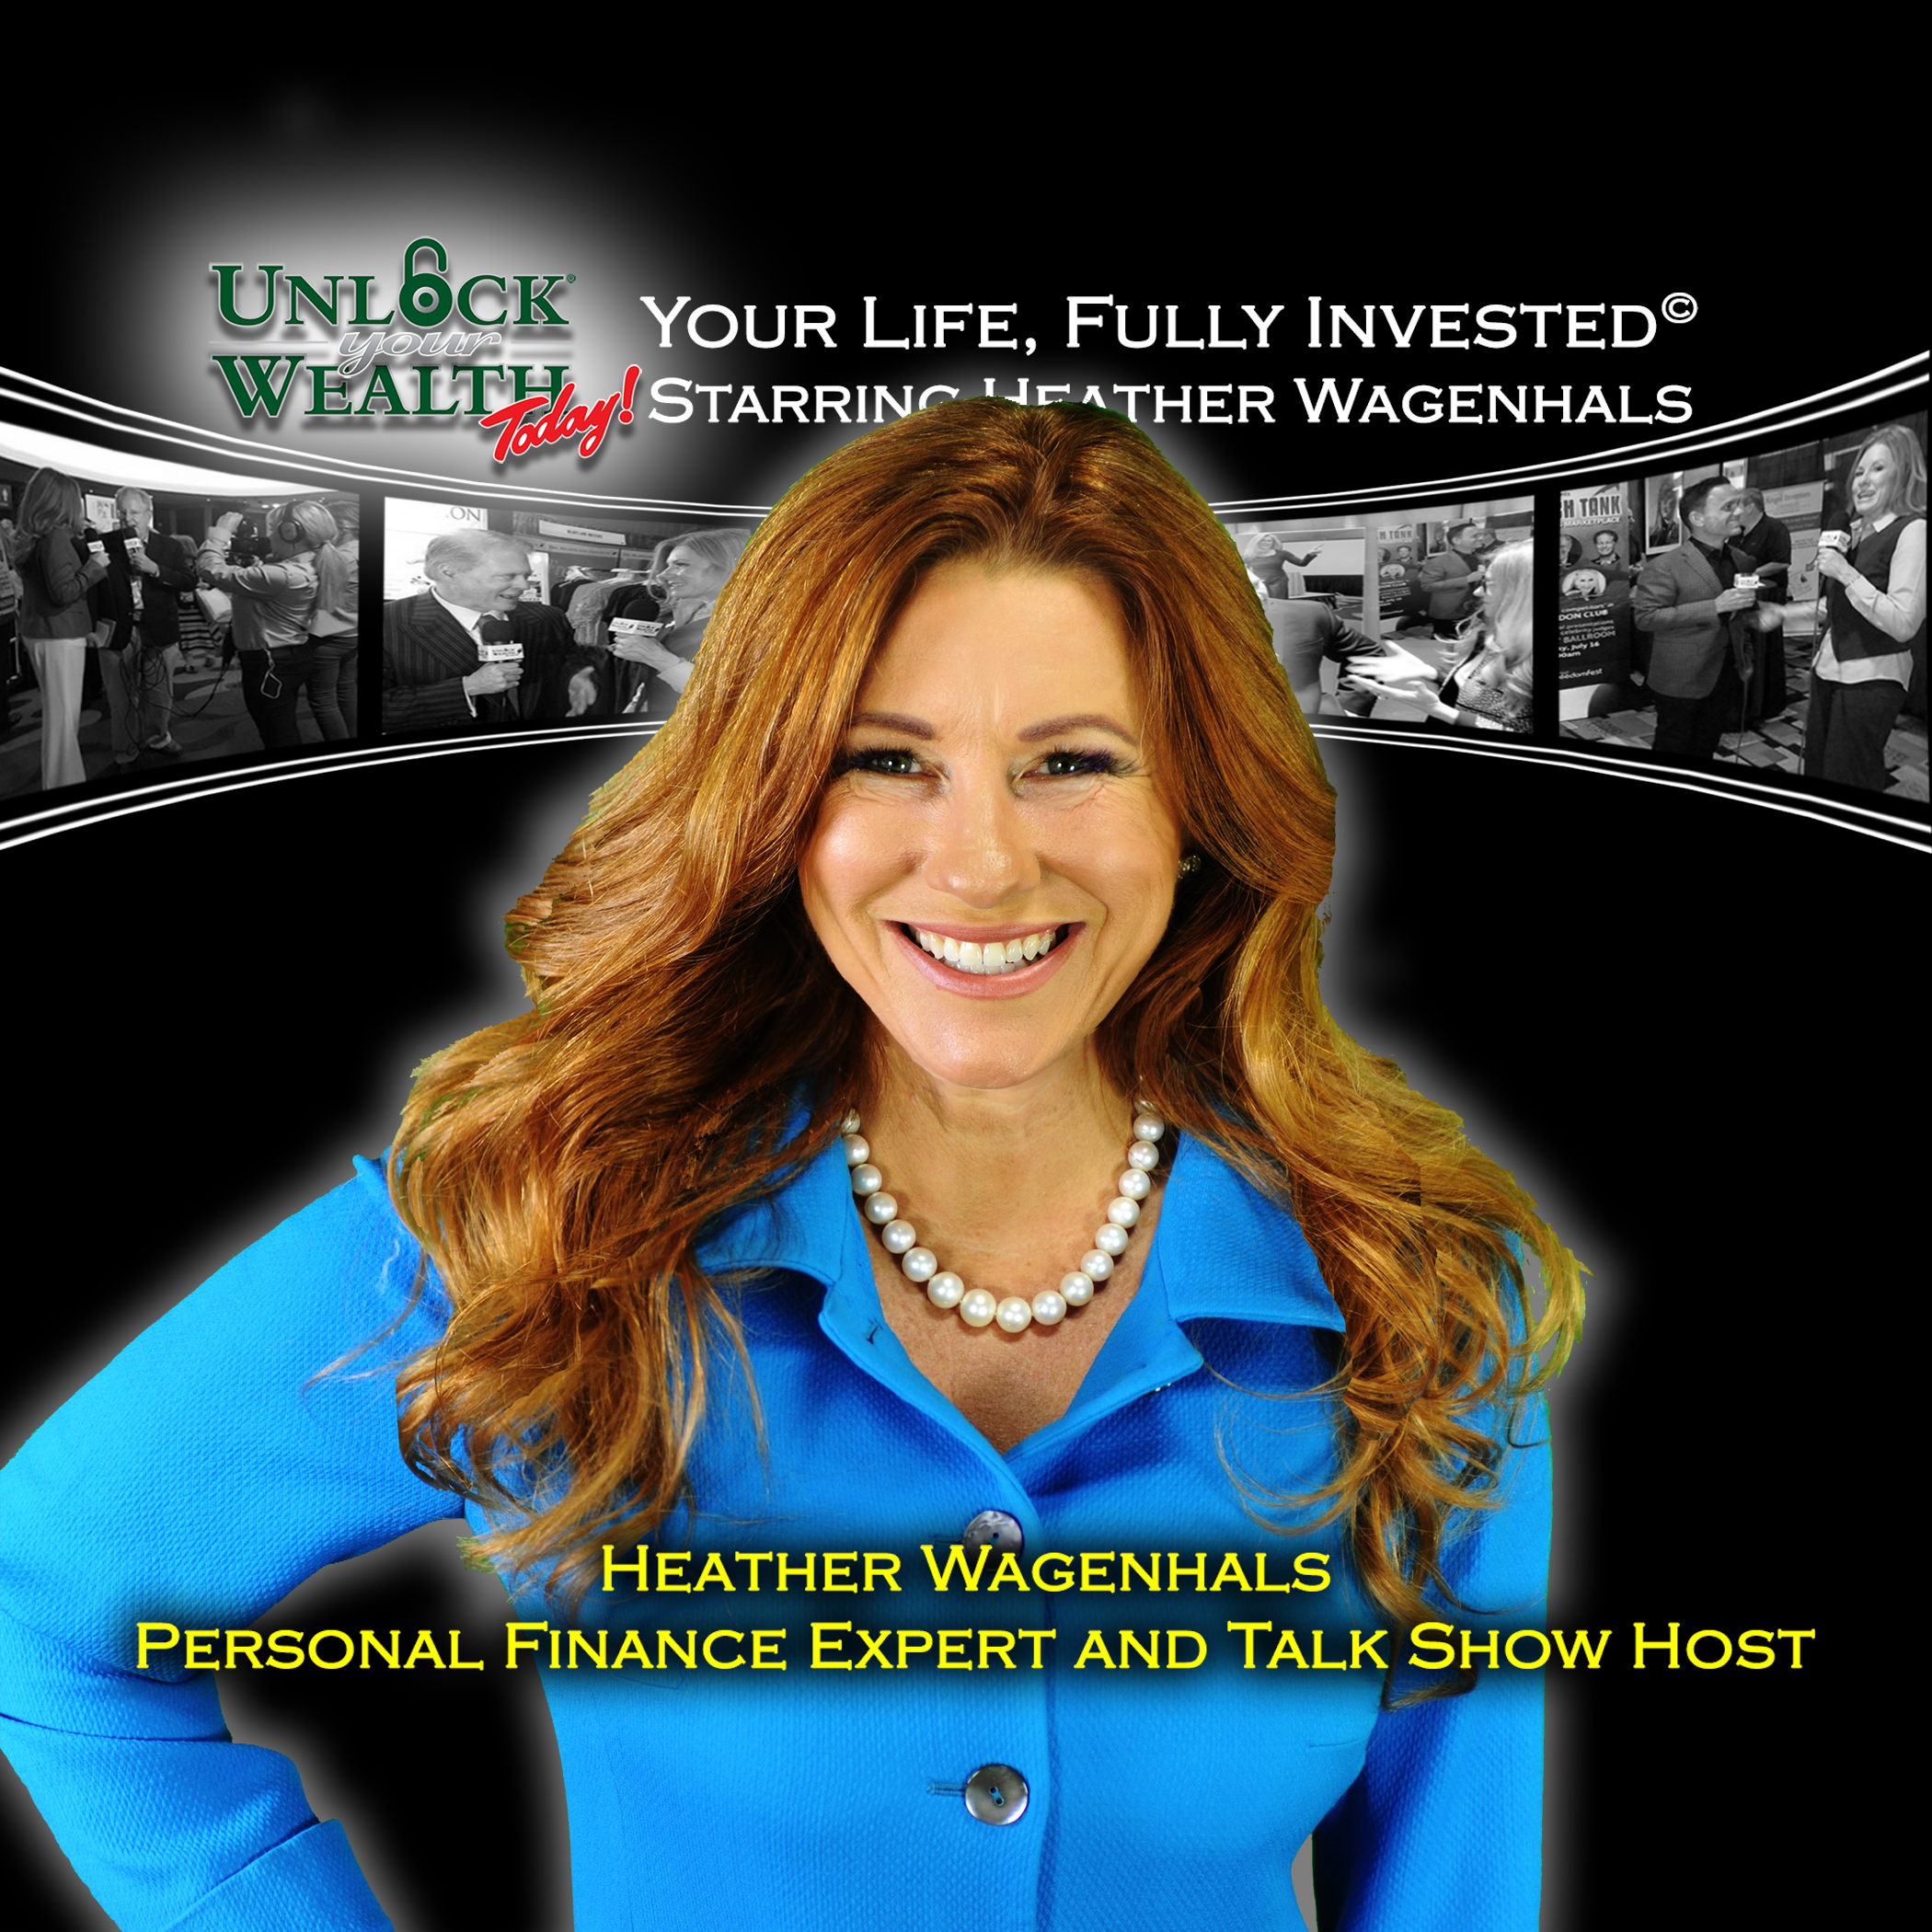 Artwork for Heather Wagenhals Warns Listeners of Identity Theft this Holiday Season